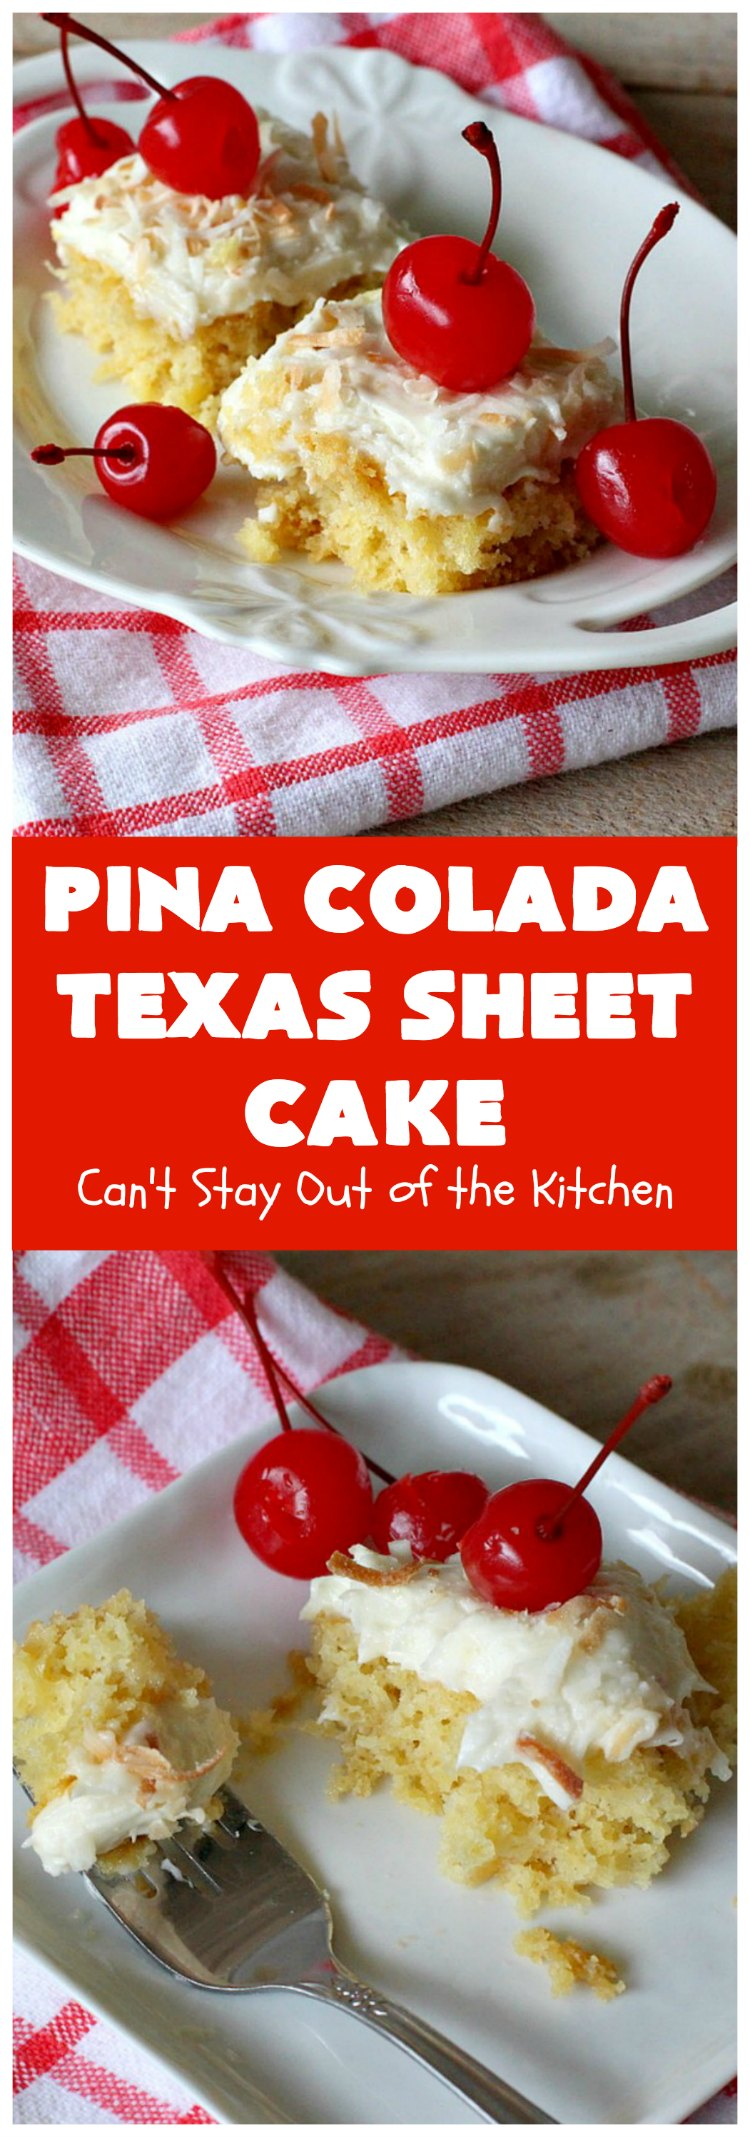 Pina Colada Texas Sheet Cake | Can't Stay Out of the Kitchen